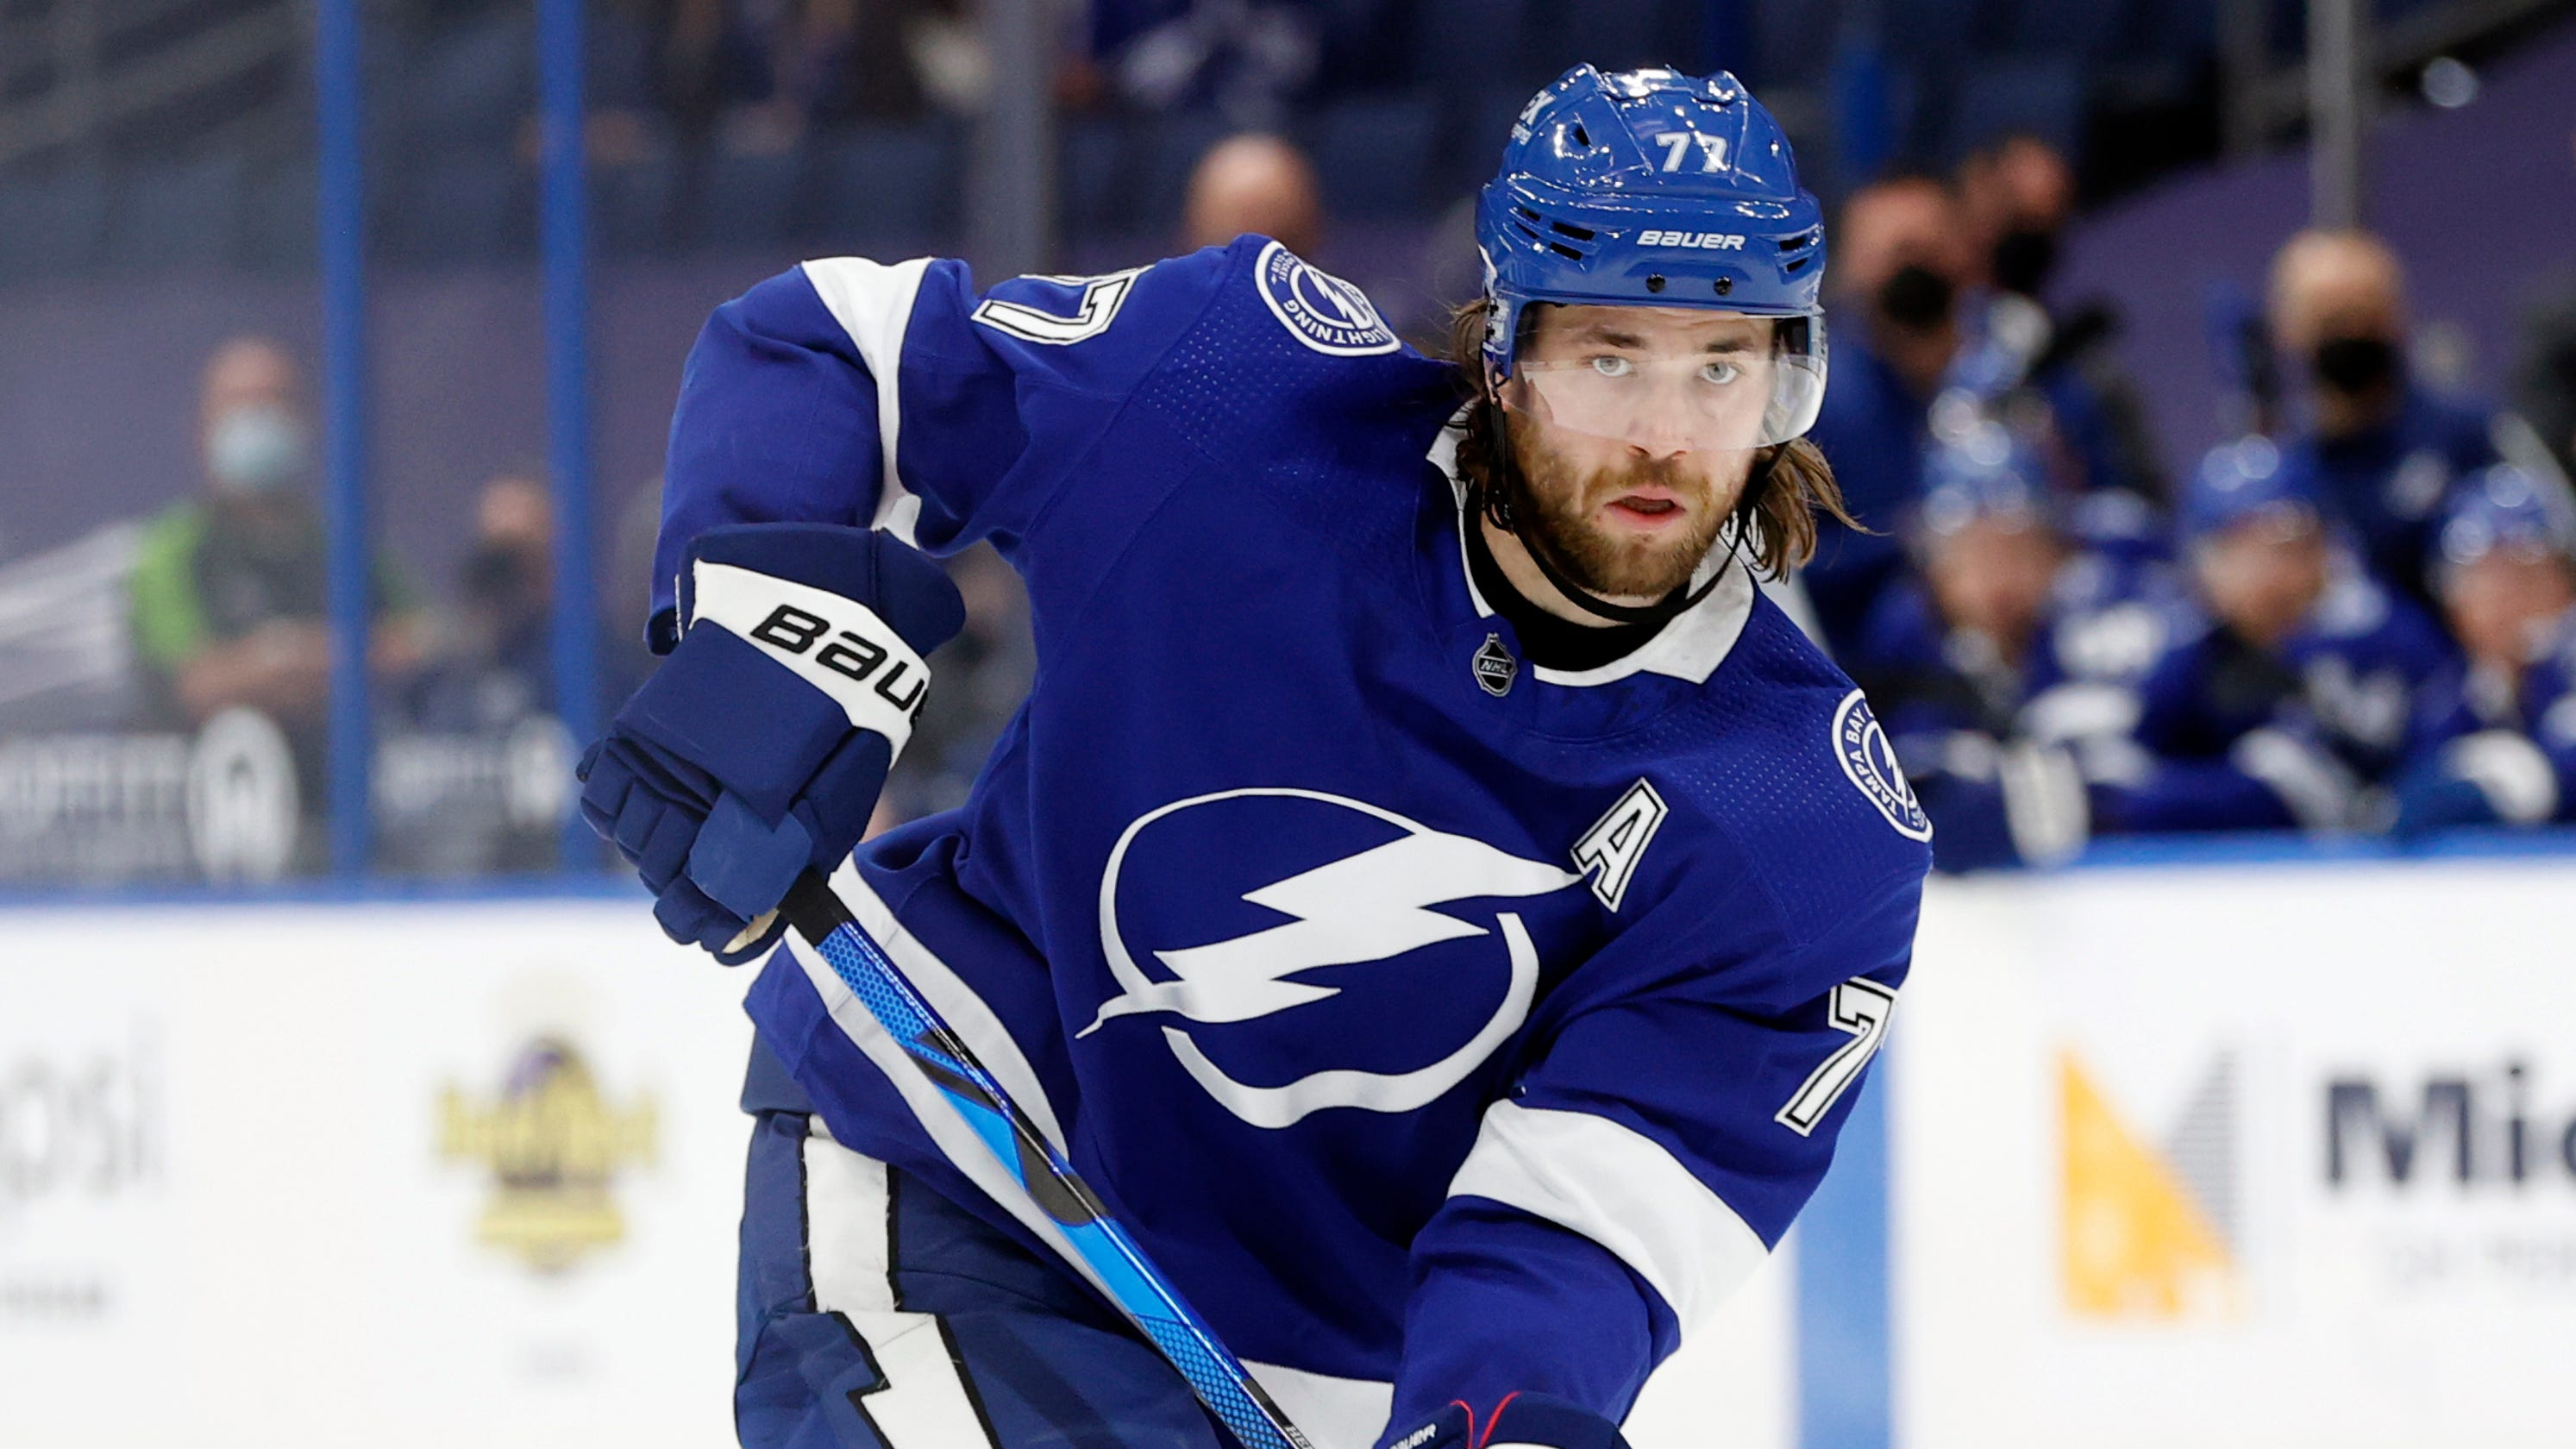 Victor Hedman's health among potentially troubling issues facing NHL playoff teams